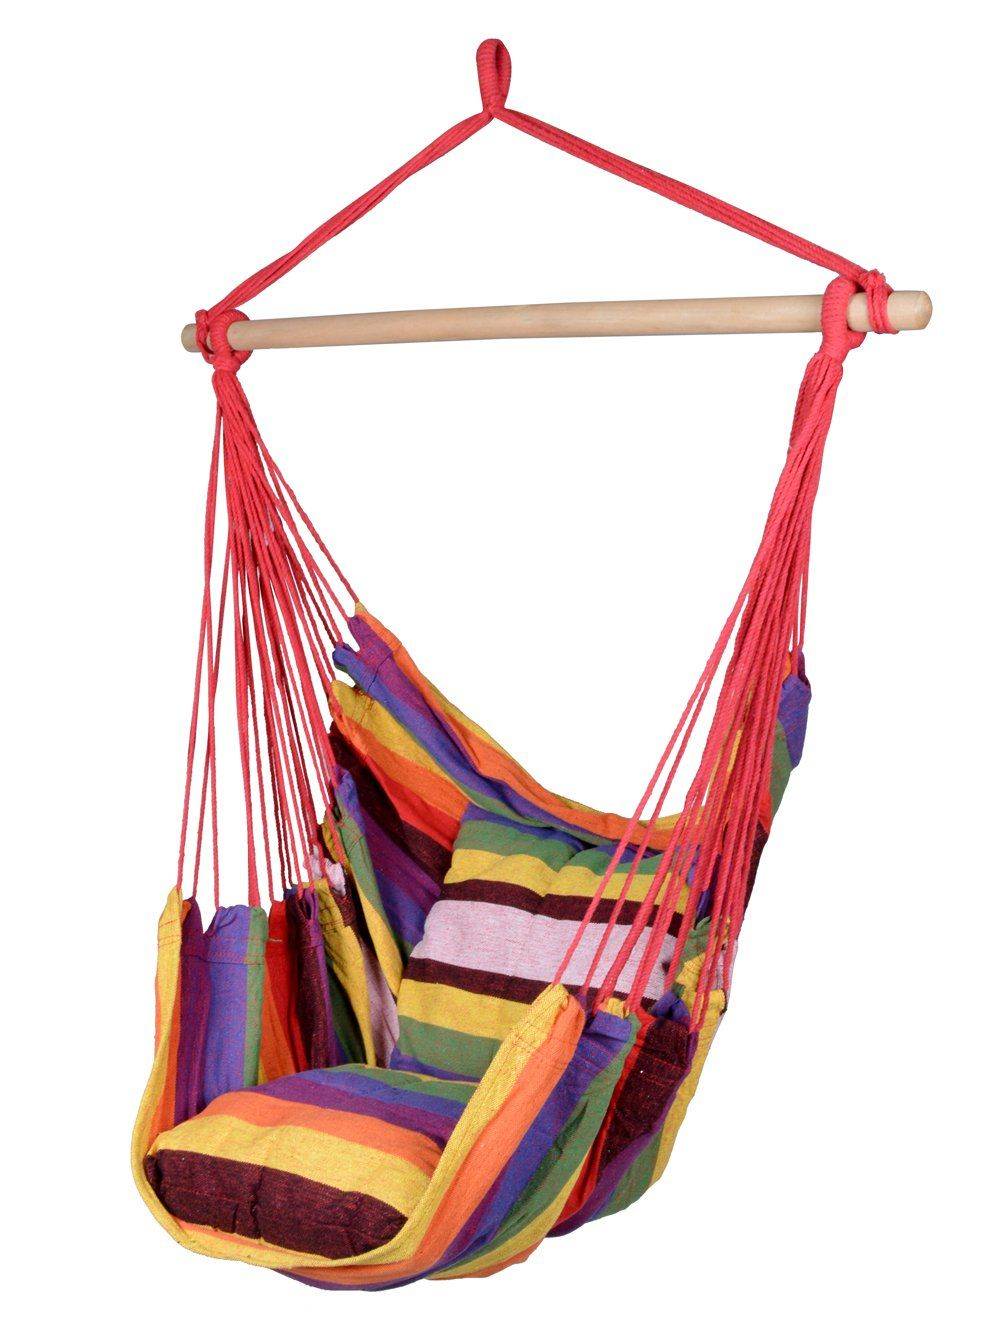 Tms canvas hanging chair outdoor porch swing yard tree hammock